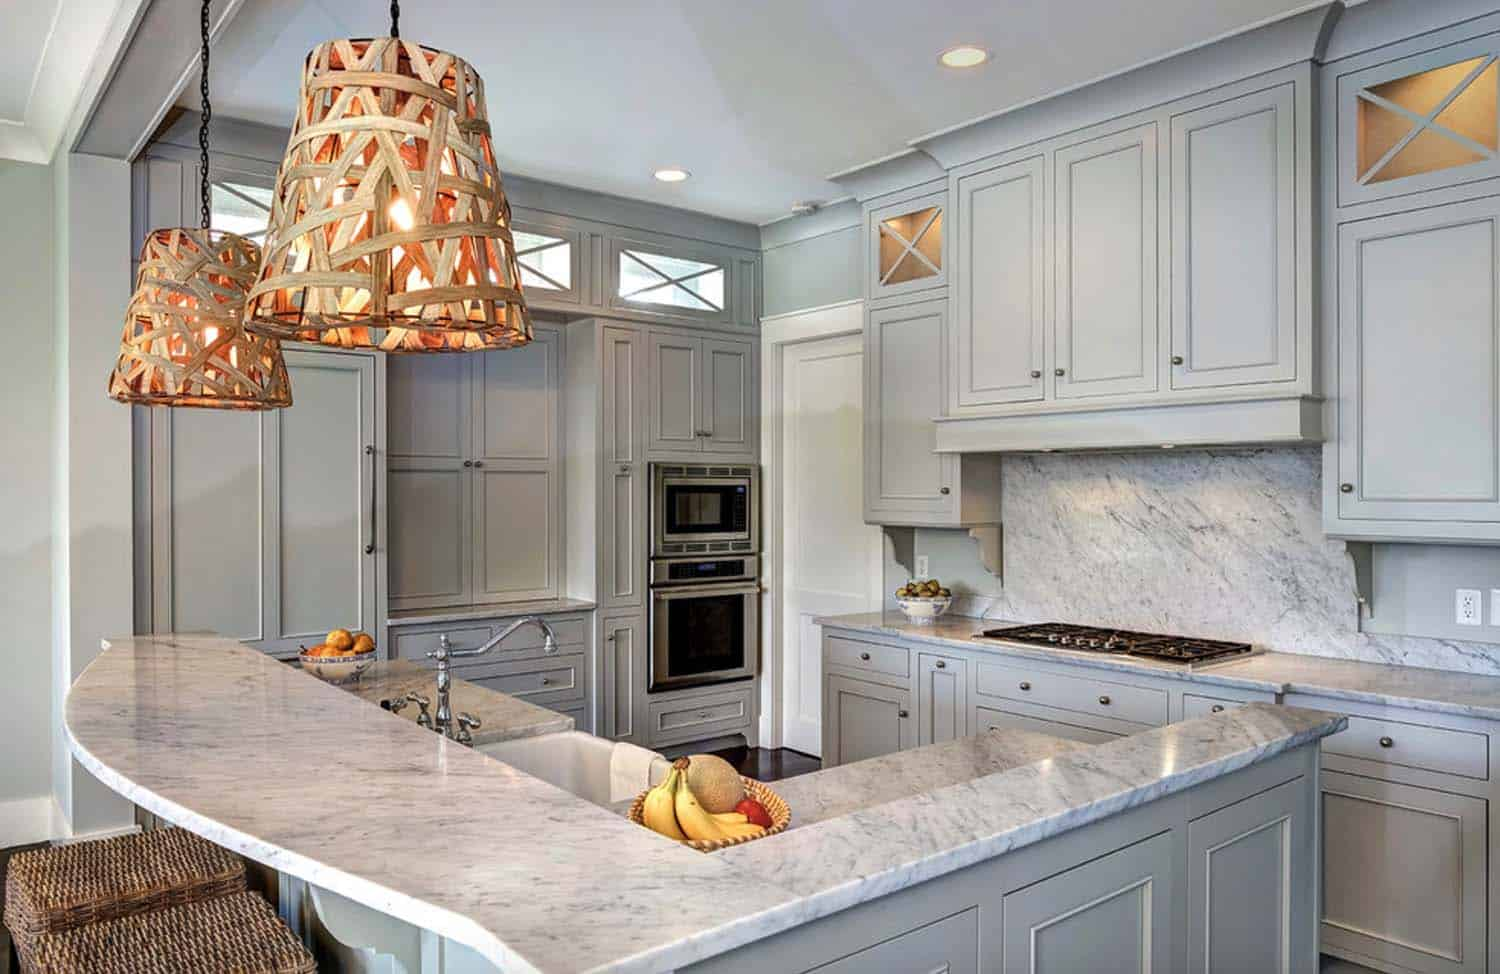 Breathtaking Carrara Marble Kitchens-16-1 Kindesign